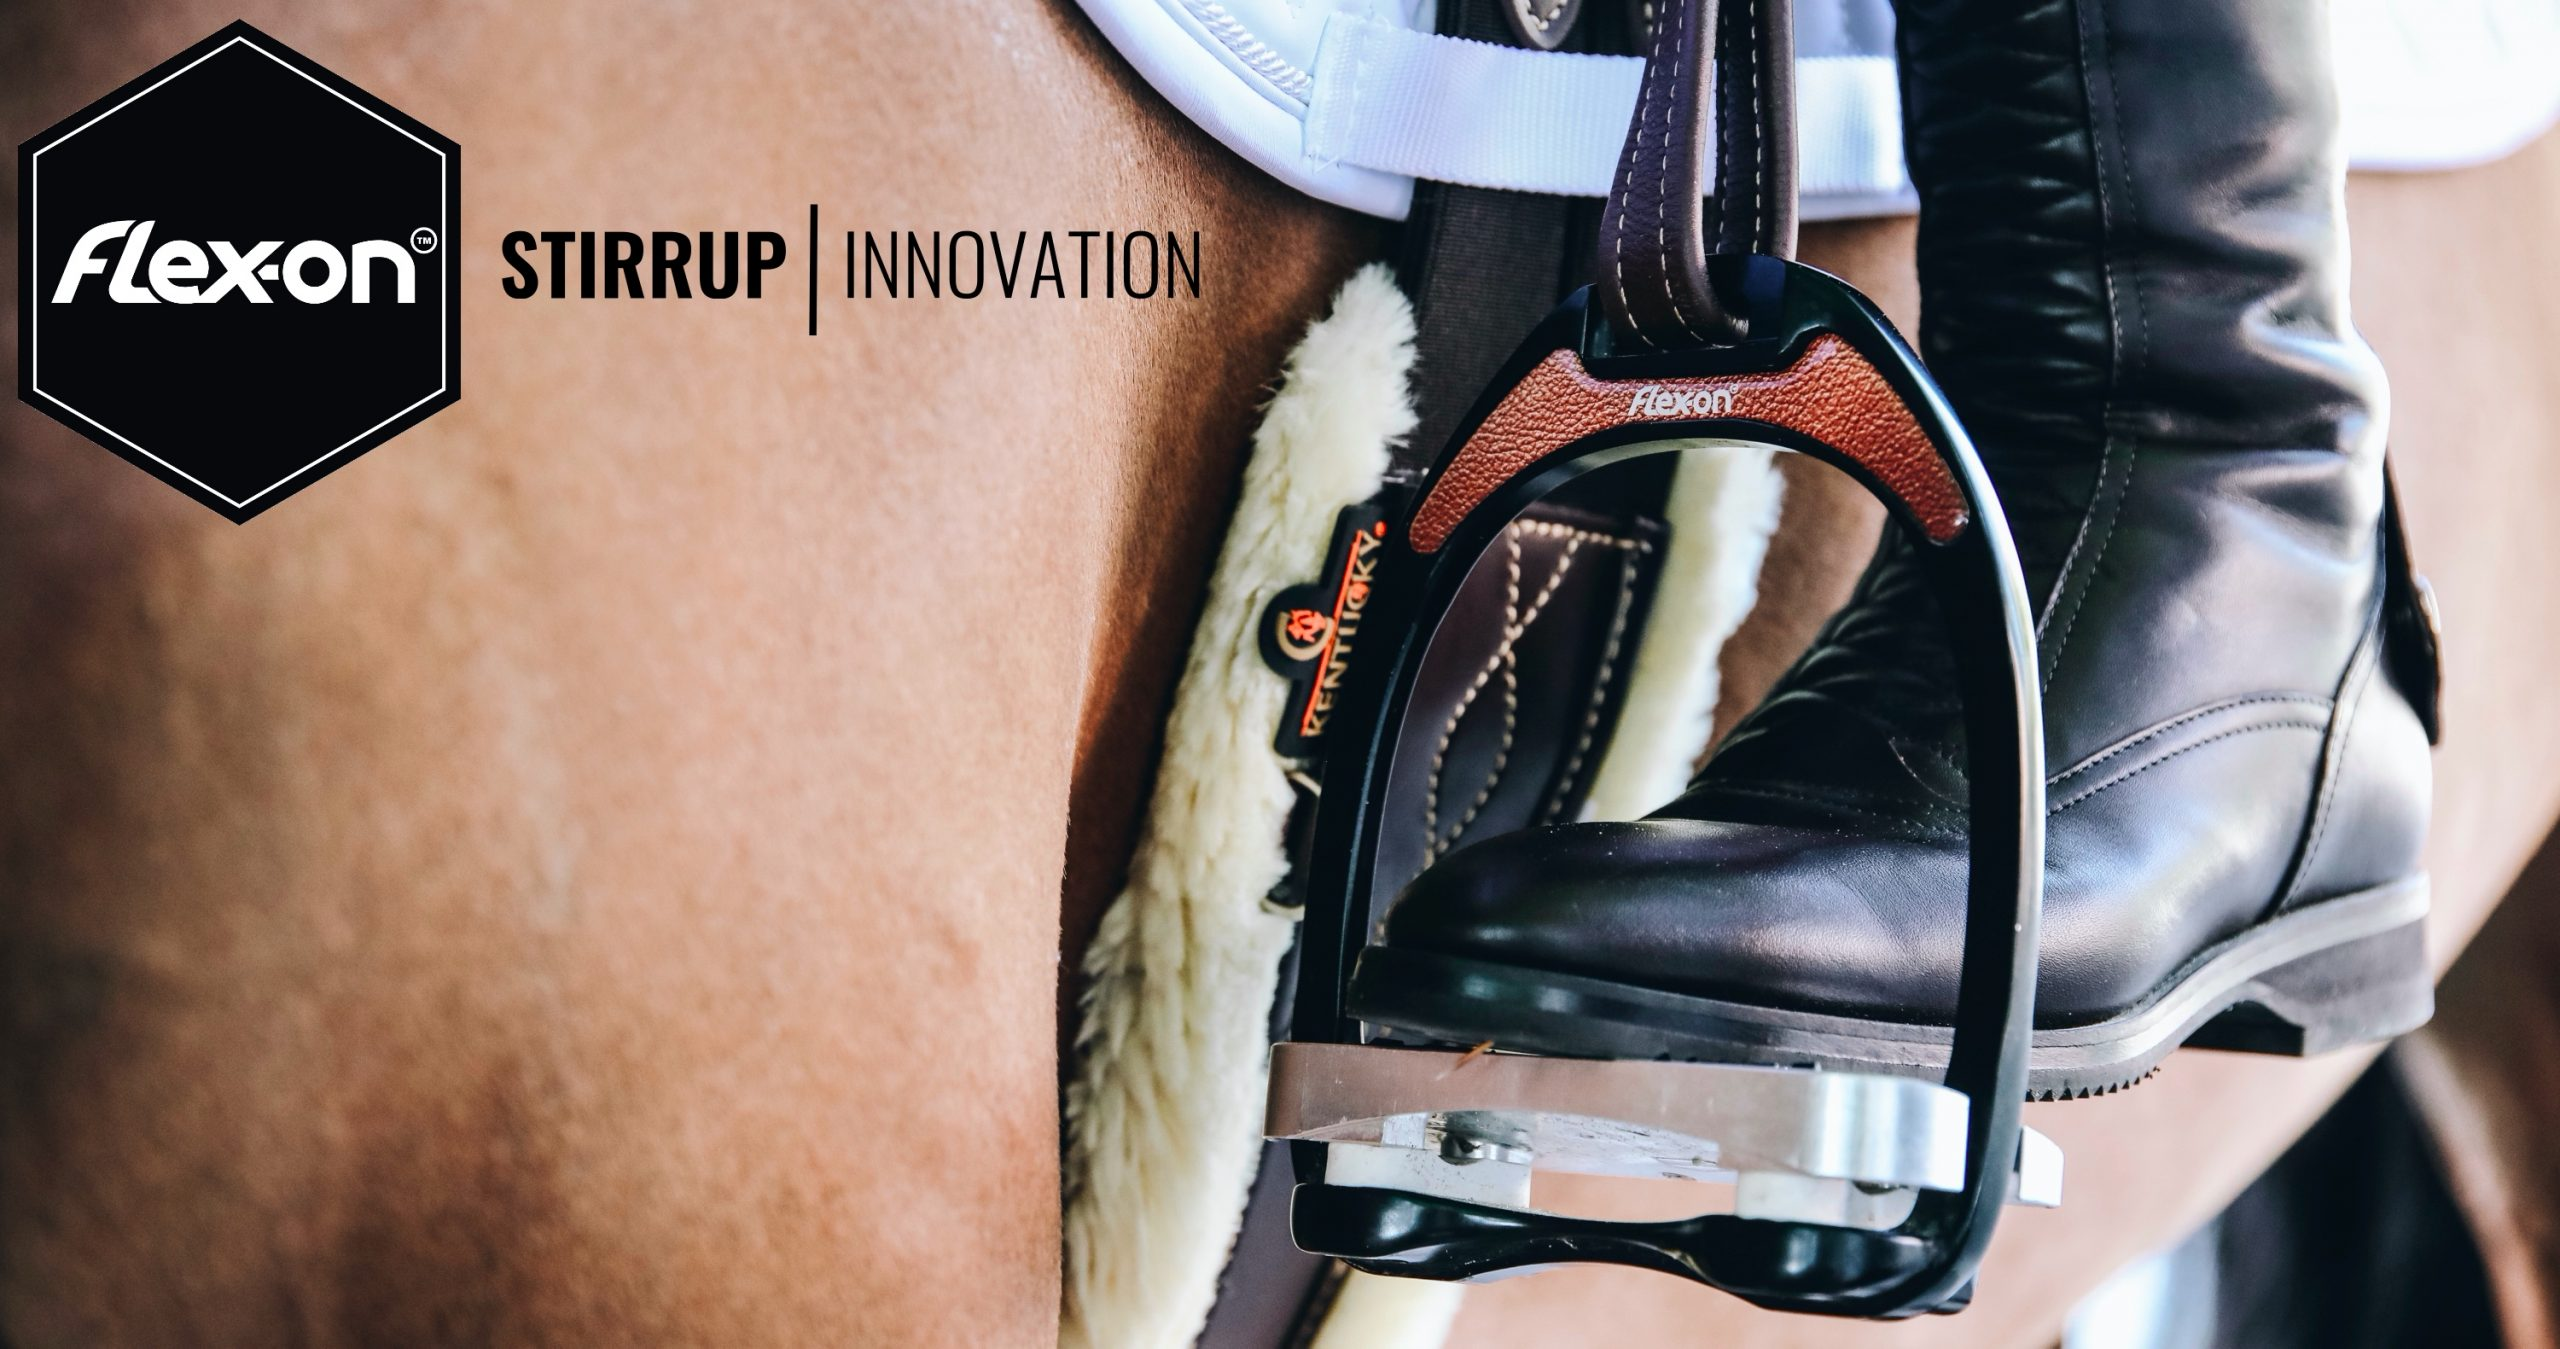 FLEX-ON-STIRRUP-INNOVATION